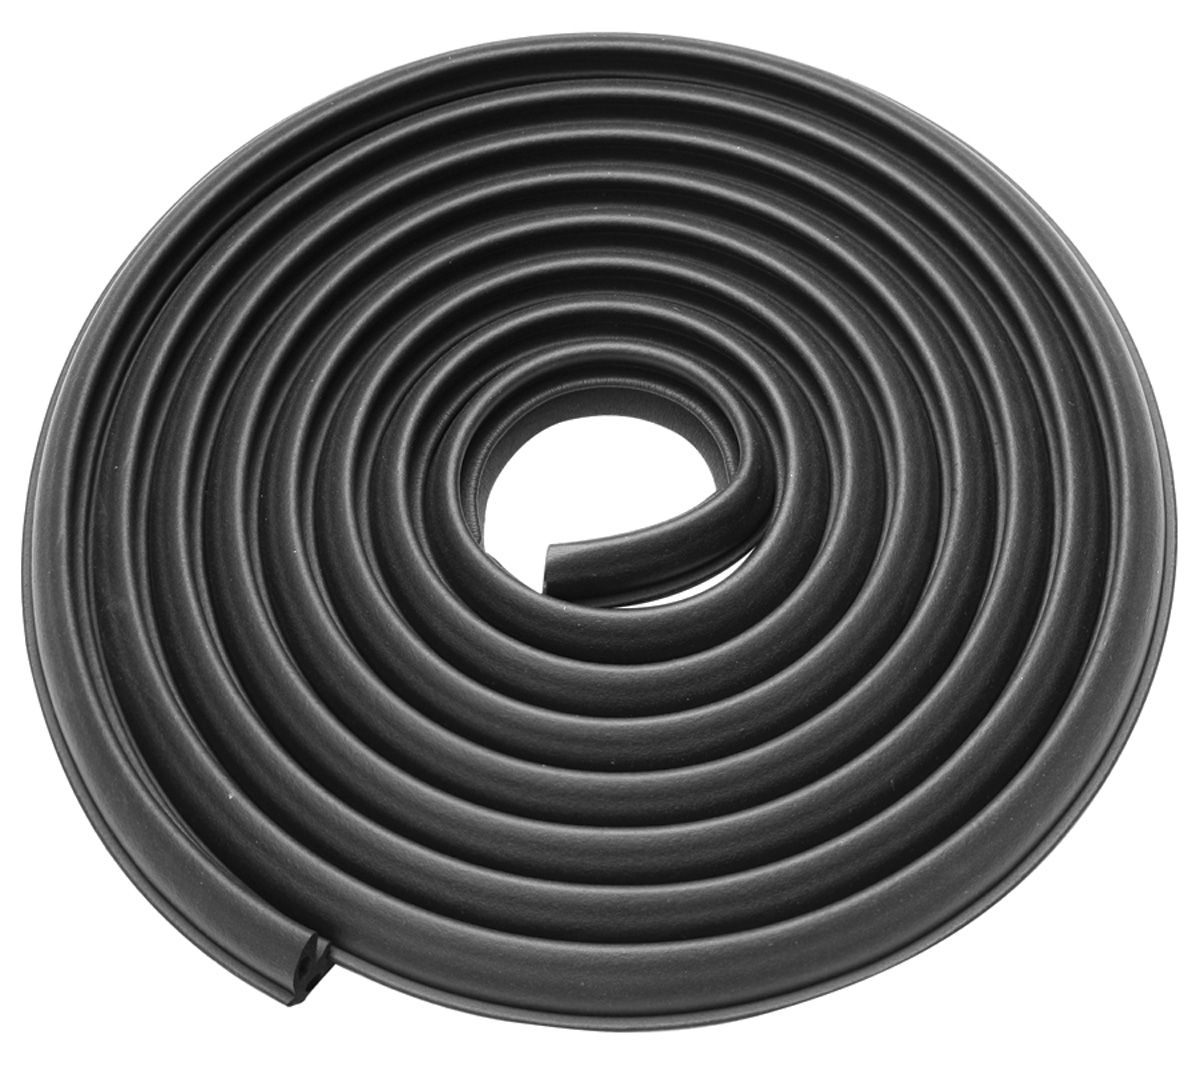 Soffseal 1957 78 Cadillac Trunk Weatherstrip Except